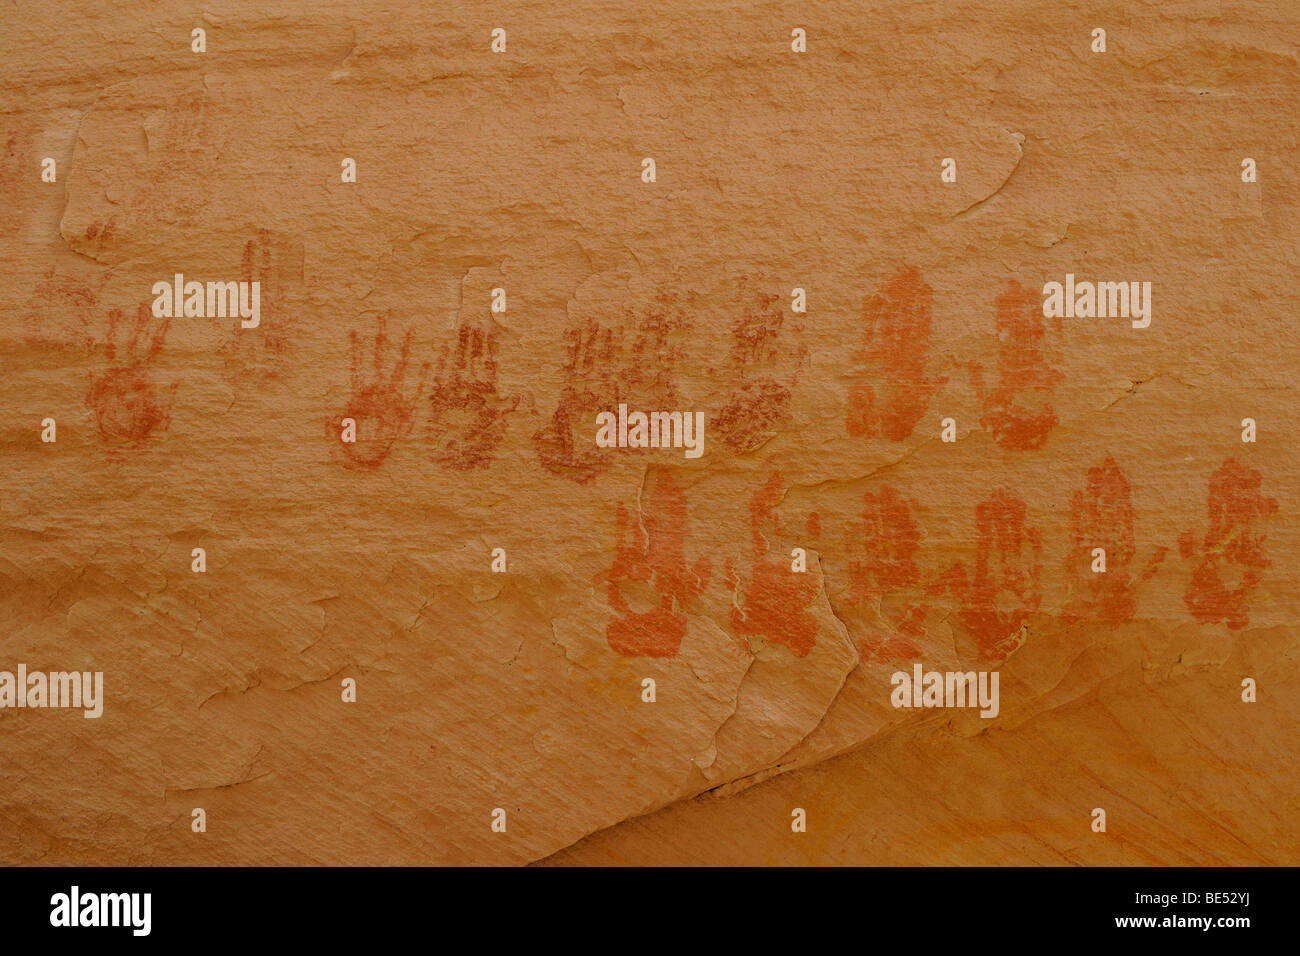 Pictographs, hand prints of 9 Anasazi Indians, about 900 years old, Cold Springs Cave near Bluff, Utah, USA - Stock Image